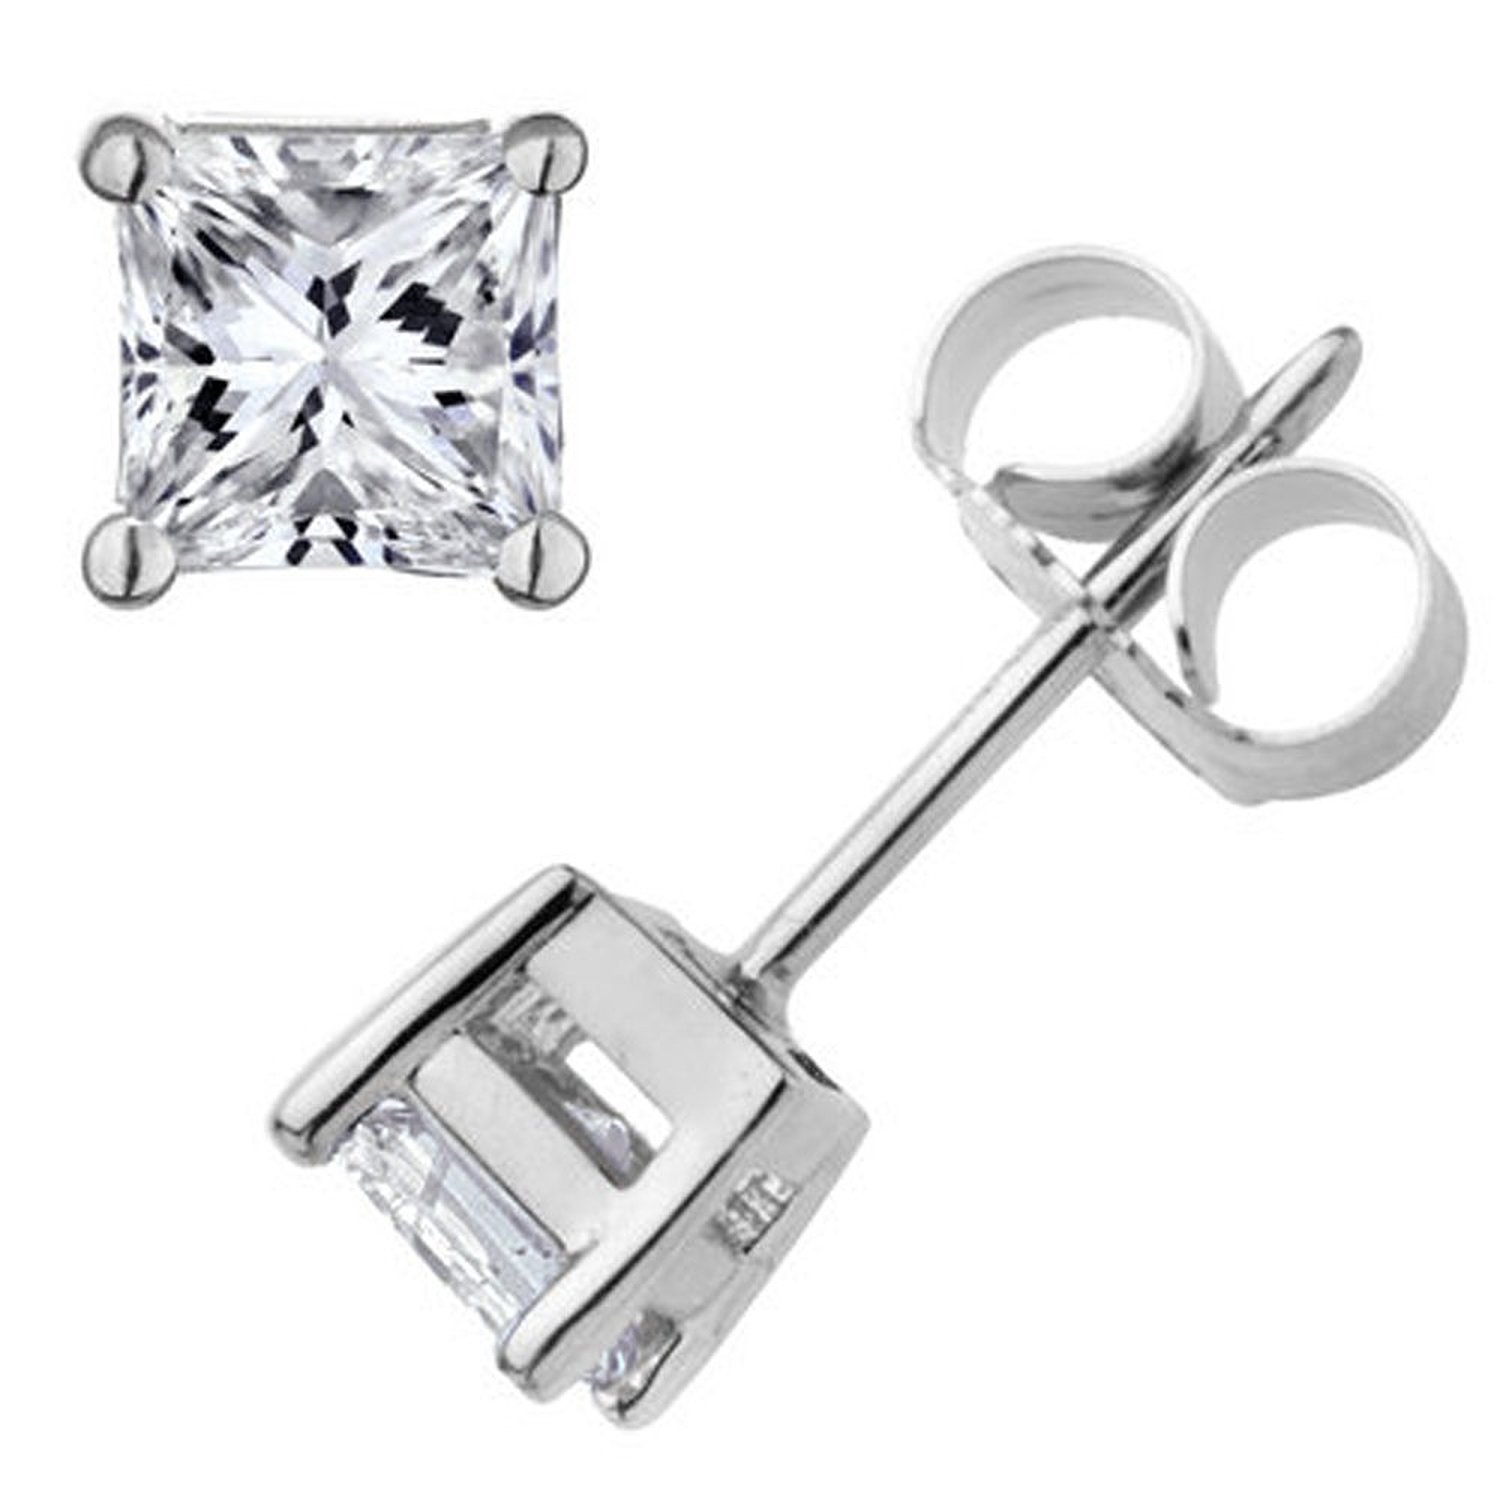 collections micro earrings clear studs hip square screwback pave mens sidestones diamond giant sterling products cz stud x silver hop